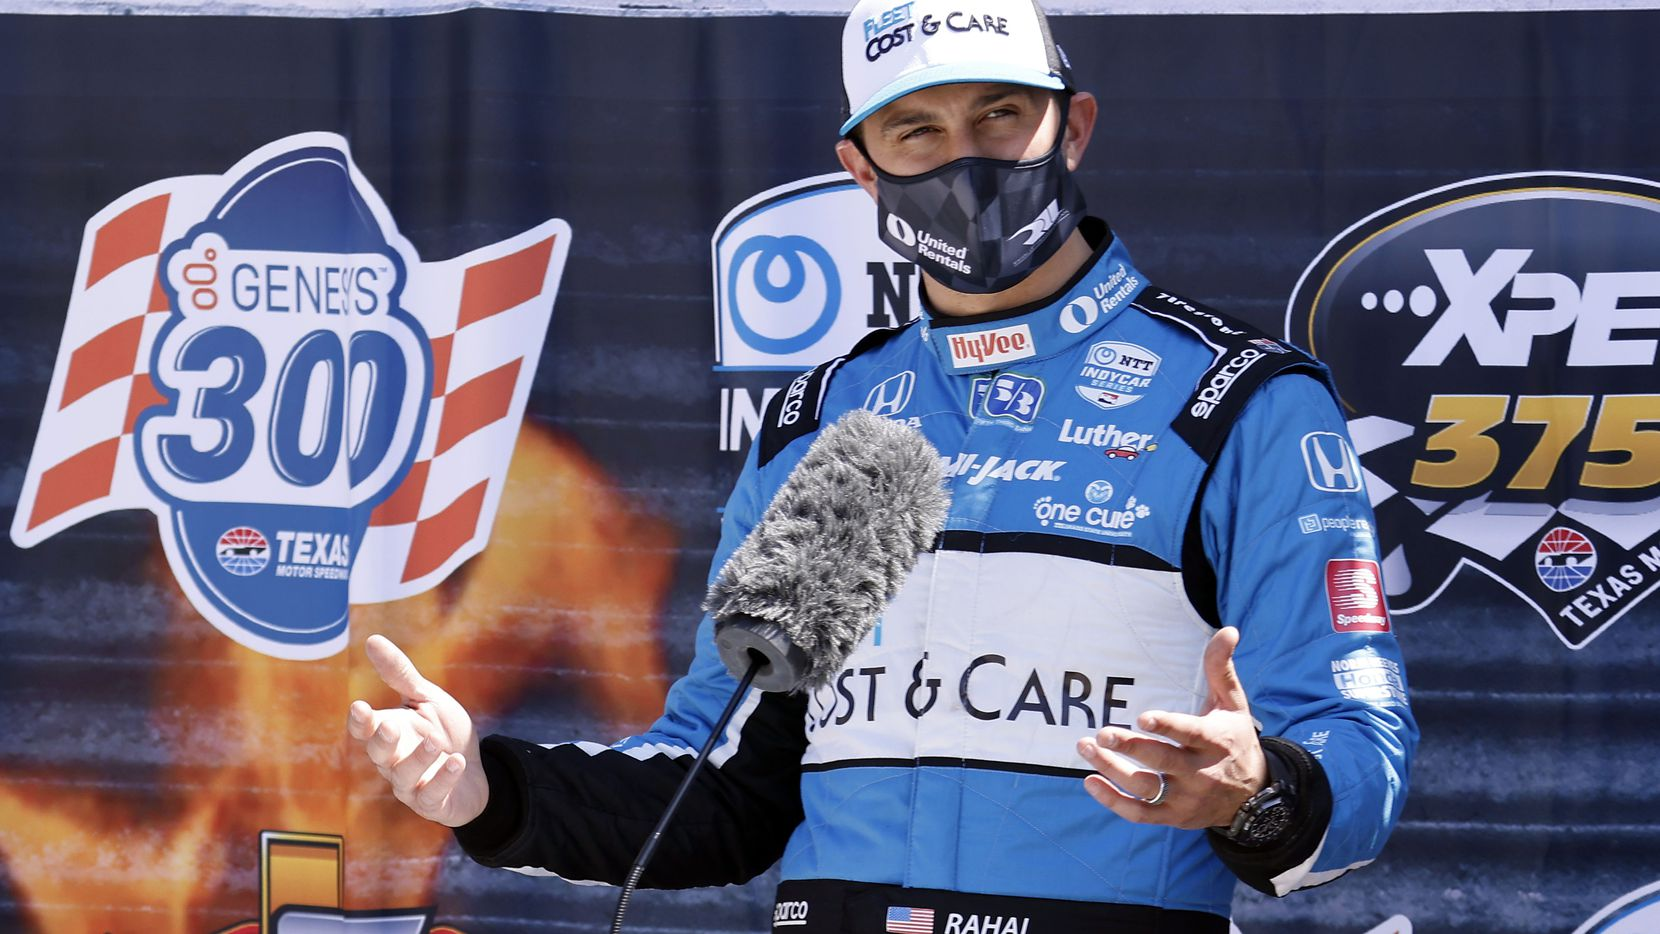 Indy Car driver Graham Rahal talks about his practice laps at Texas Motor Speedway for the upcoming NTT IndyCar Series in Fort Worth, Wednesday, March 31, 2021. (Tom Fox/The Dallas Morning News)